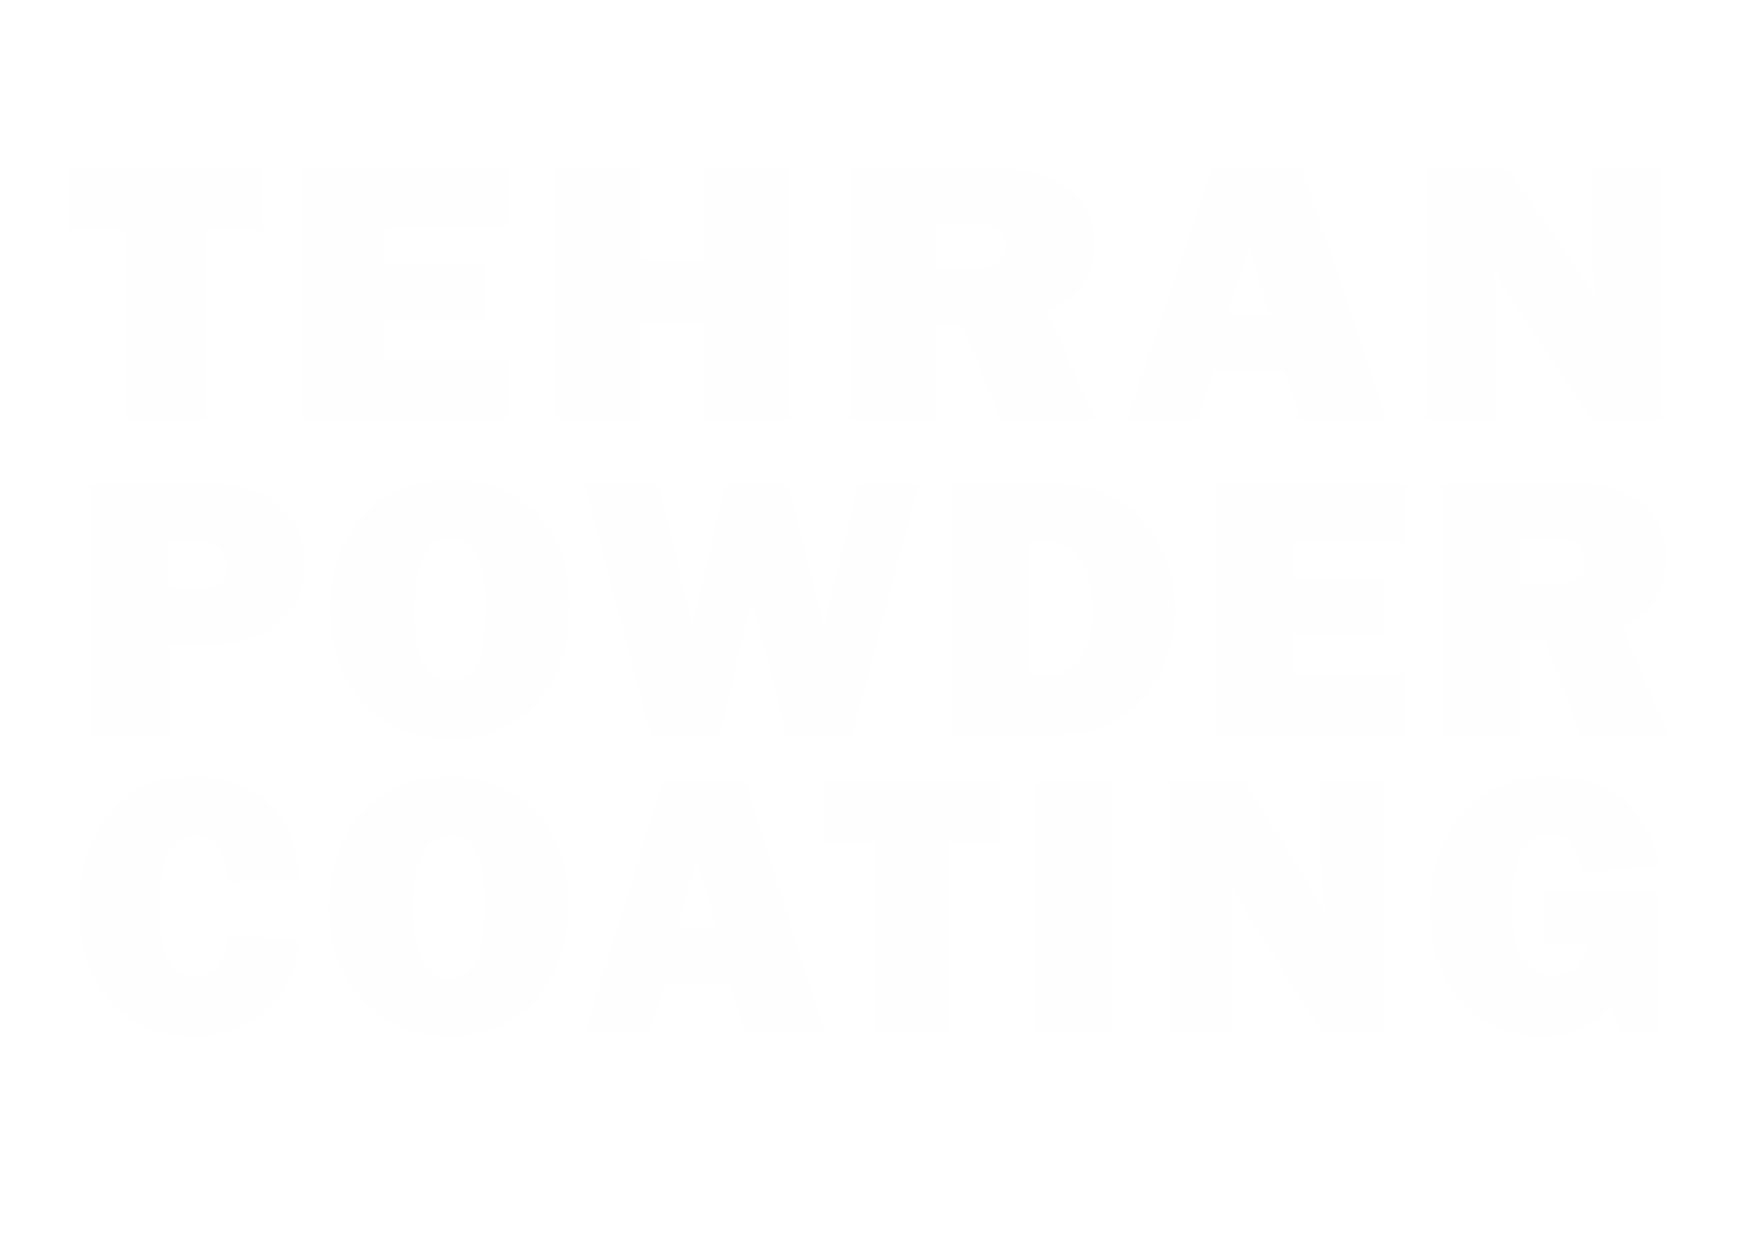 tehran powder coating